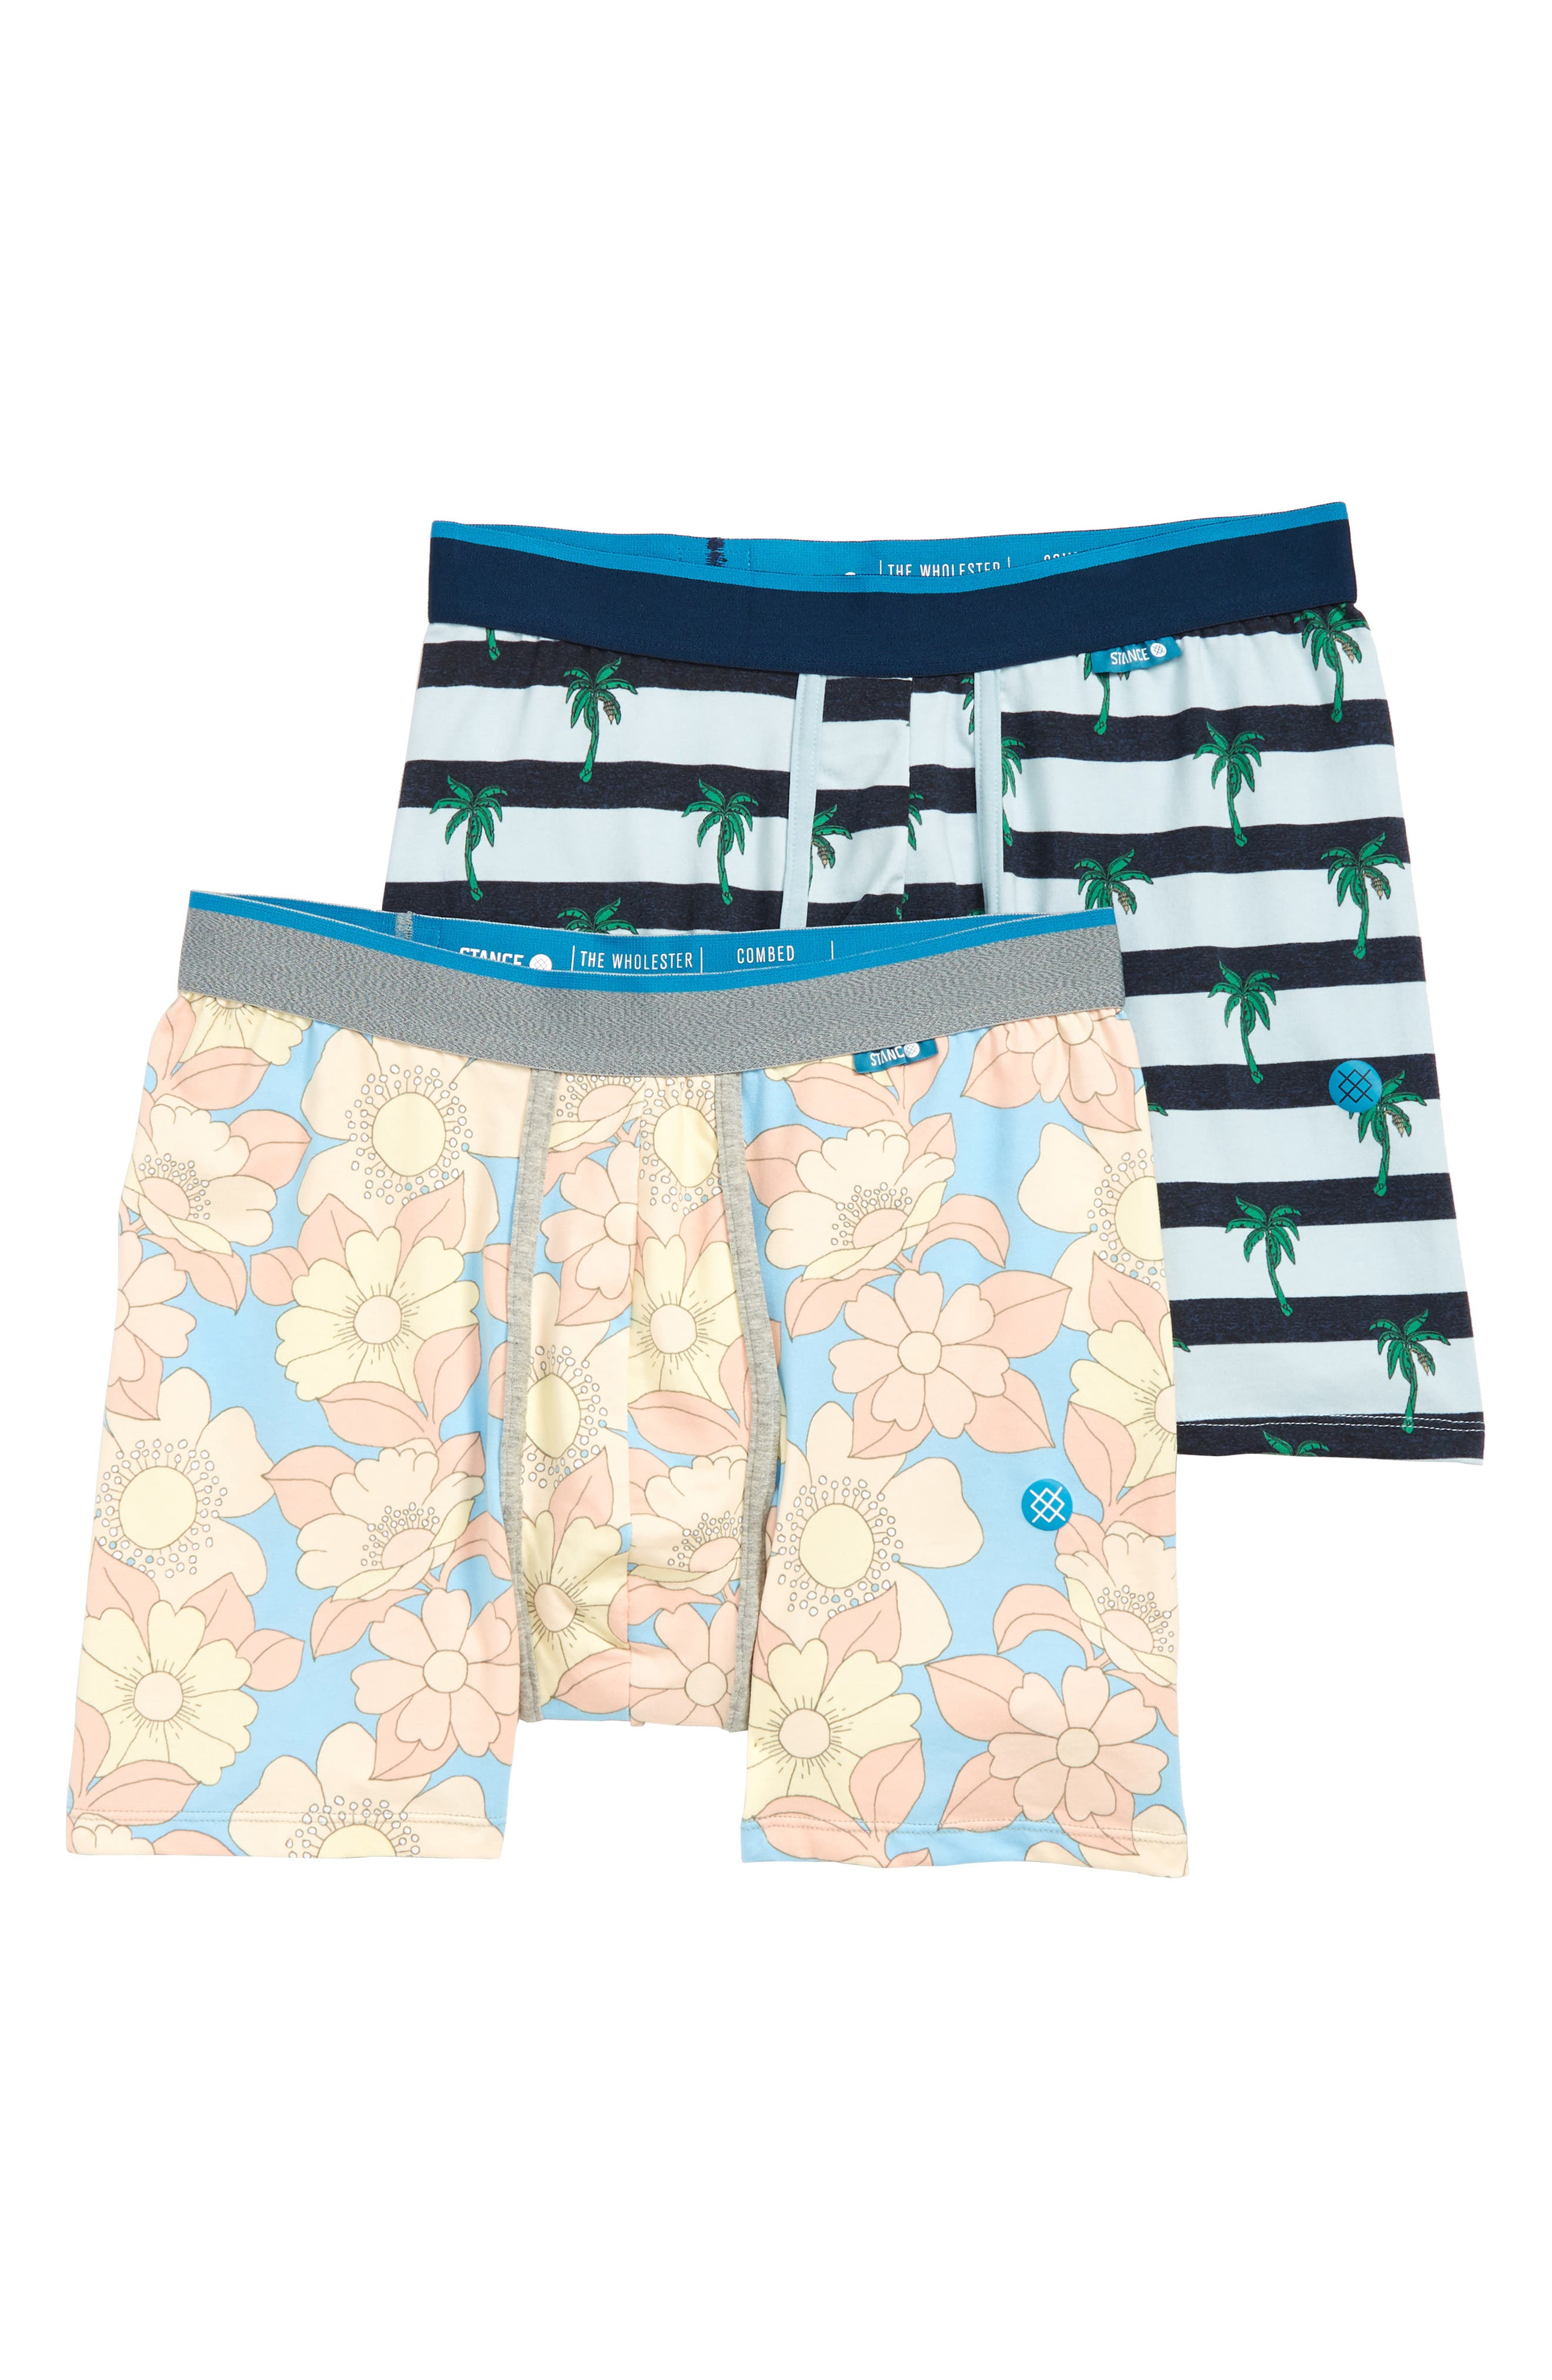 Wholester Island 2-Pack Boxer Briefs,                         Main,                         color, 400